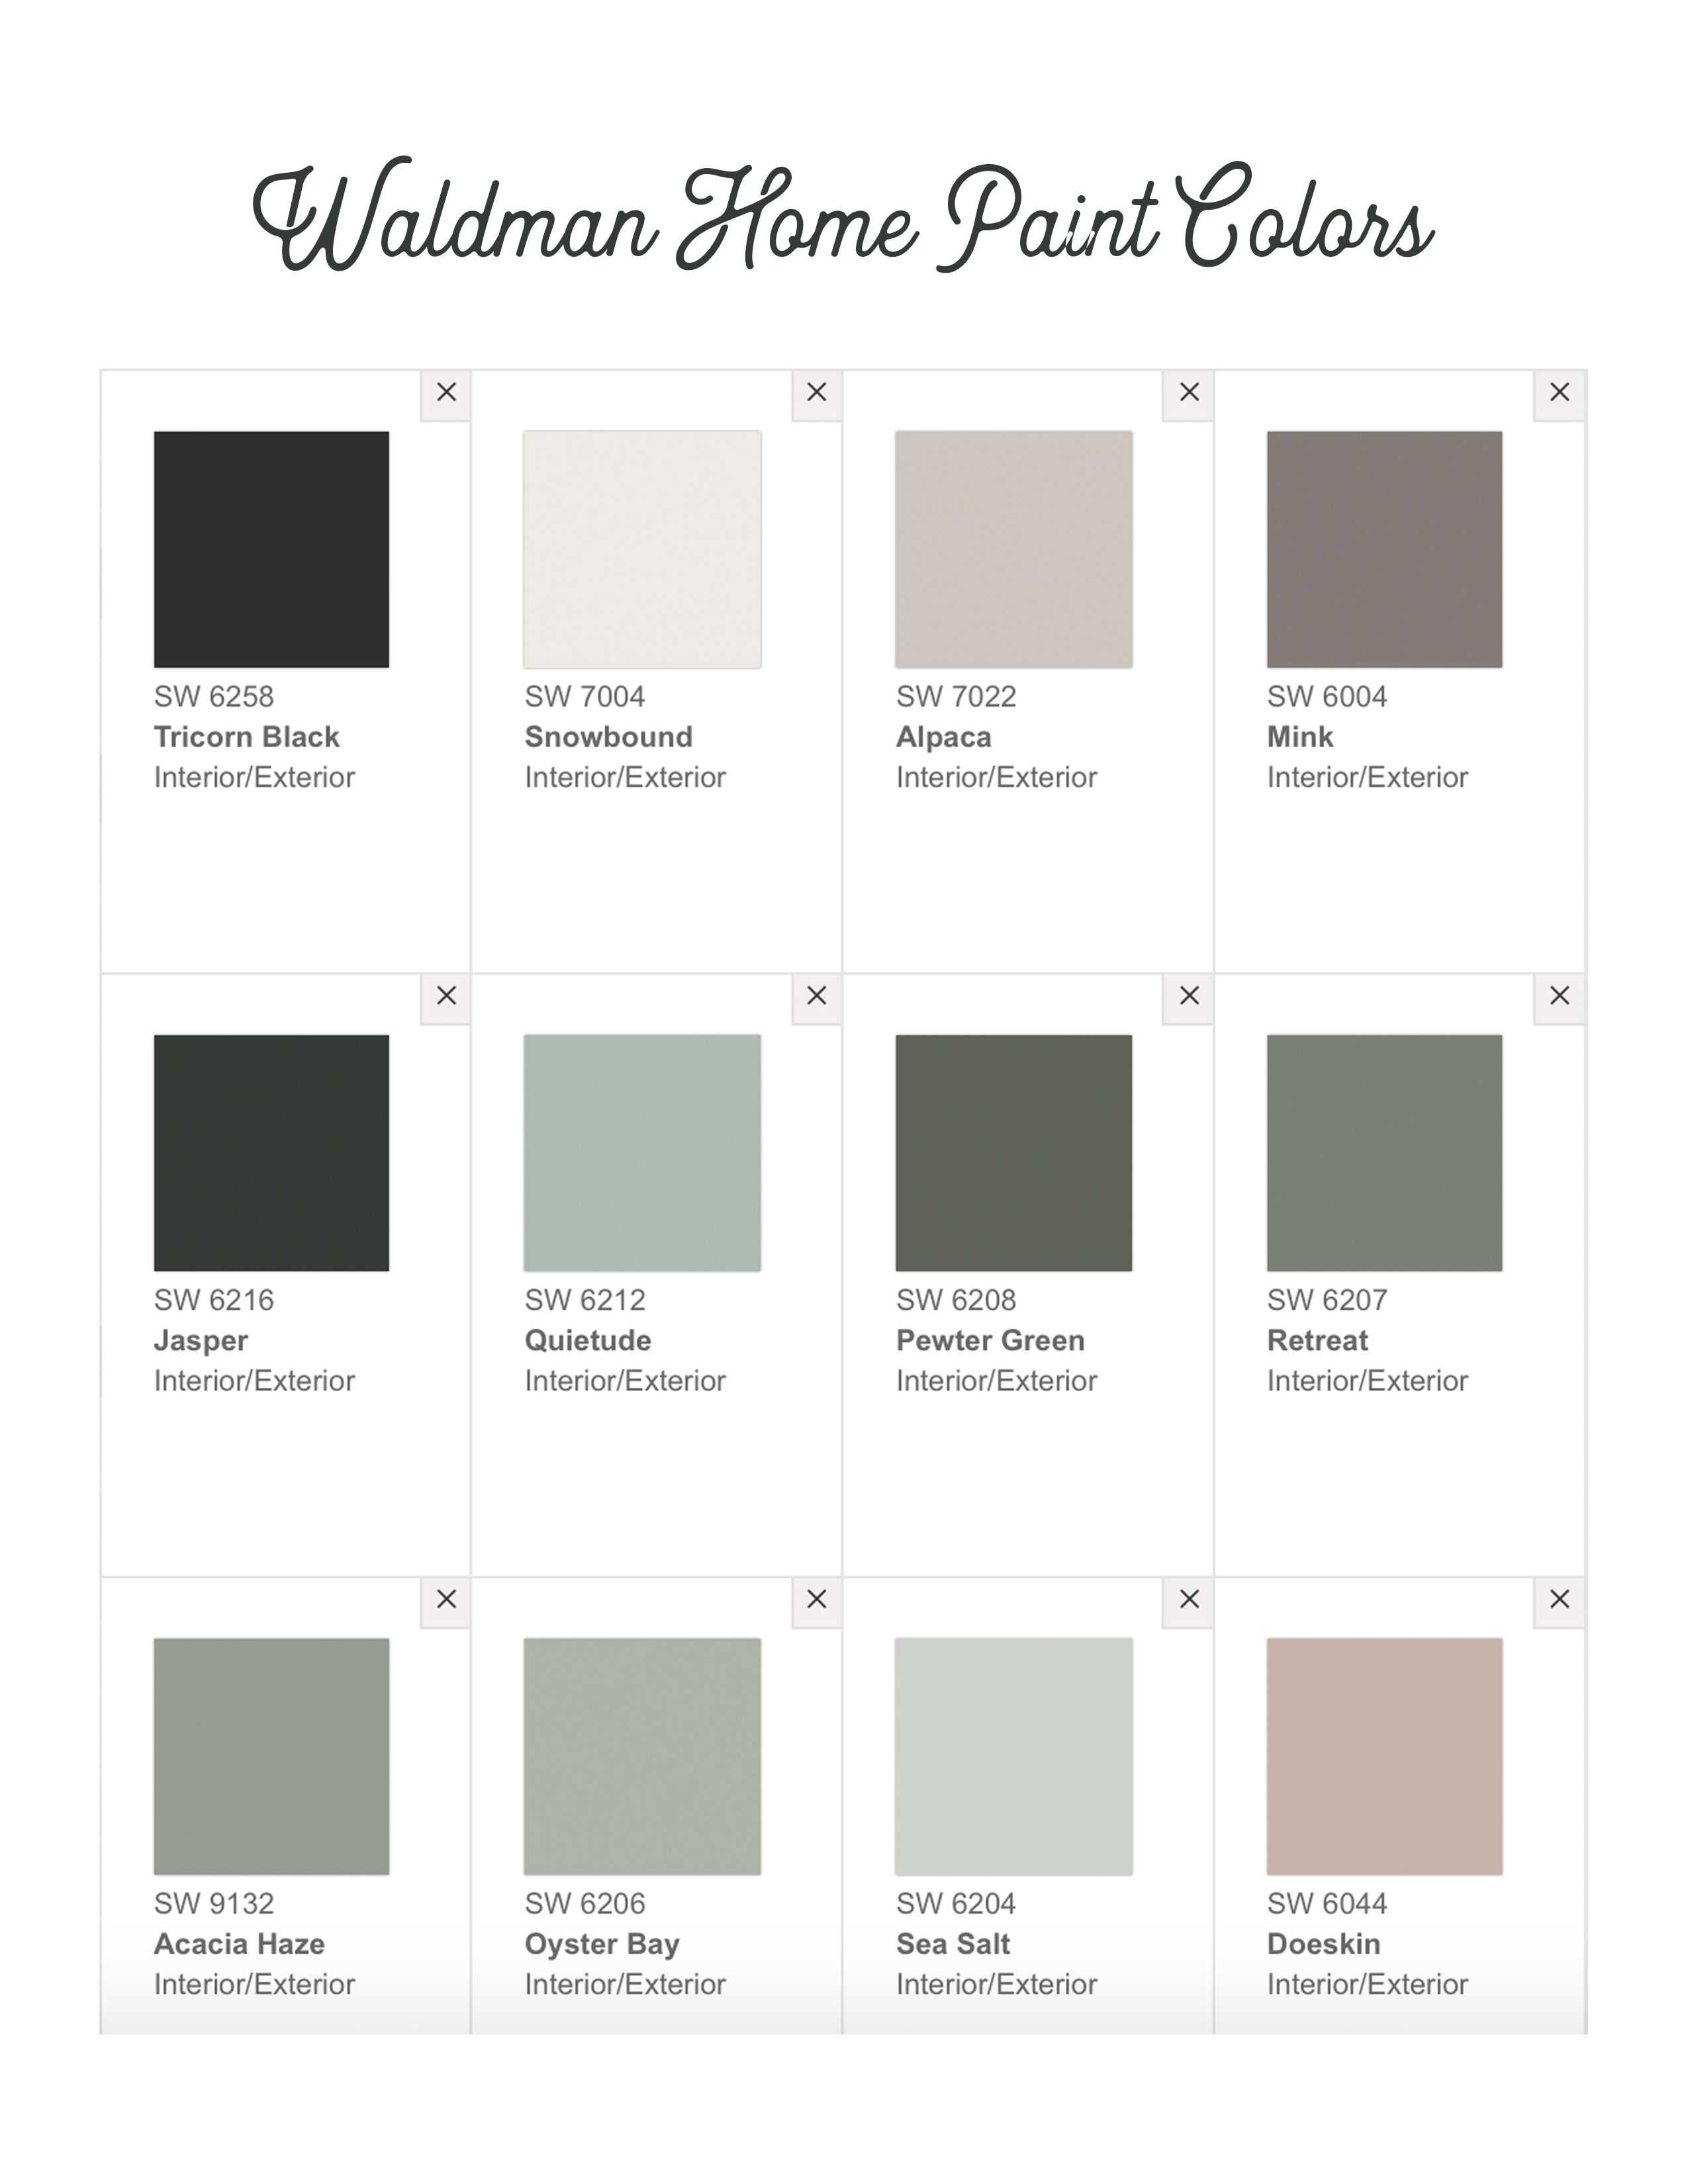 Home Paint Color Scheme Or Palette From Sherwin Williams In 2020 Paint Colors For Home Sherwin Williams Color Palette House Color Palettes